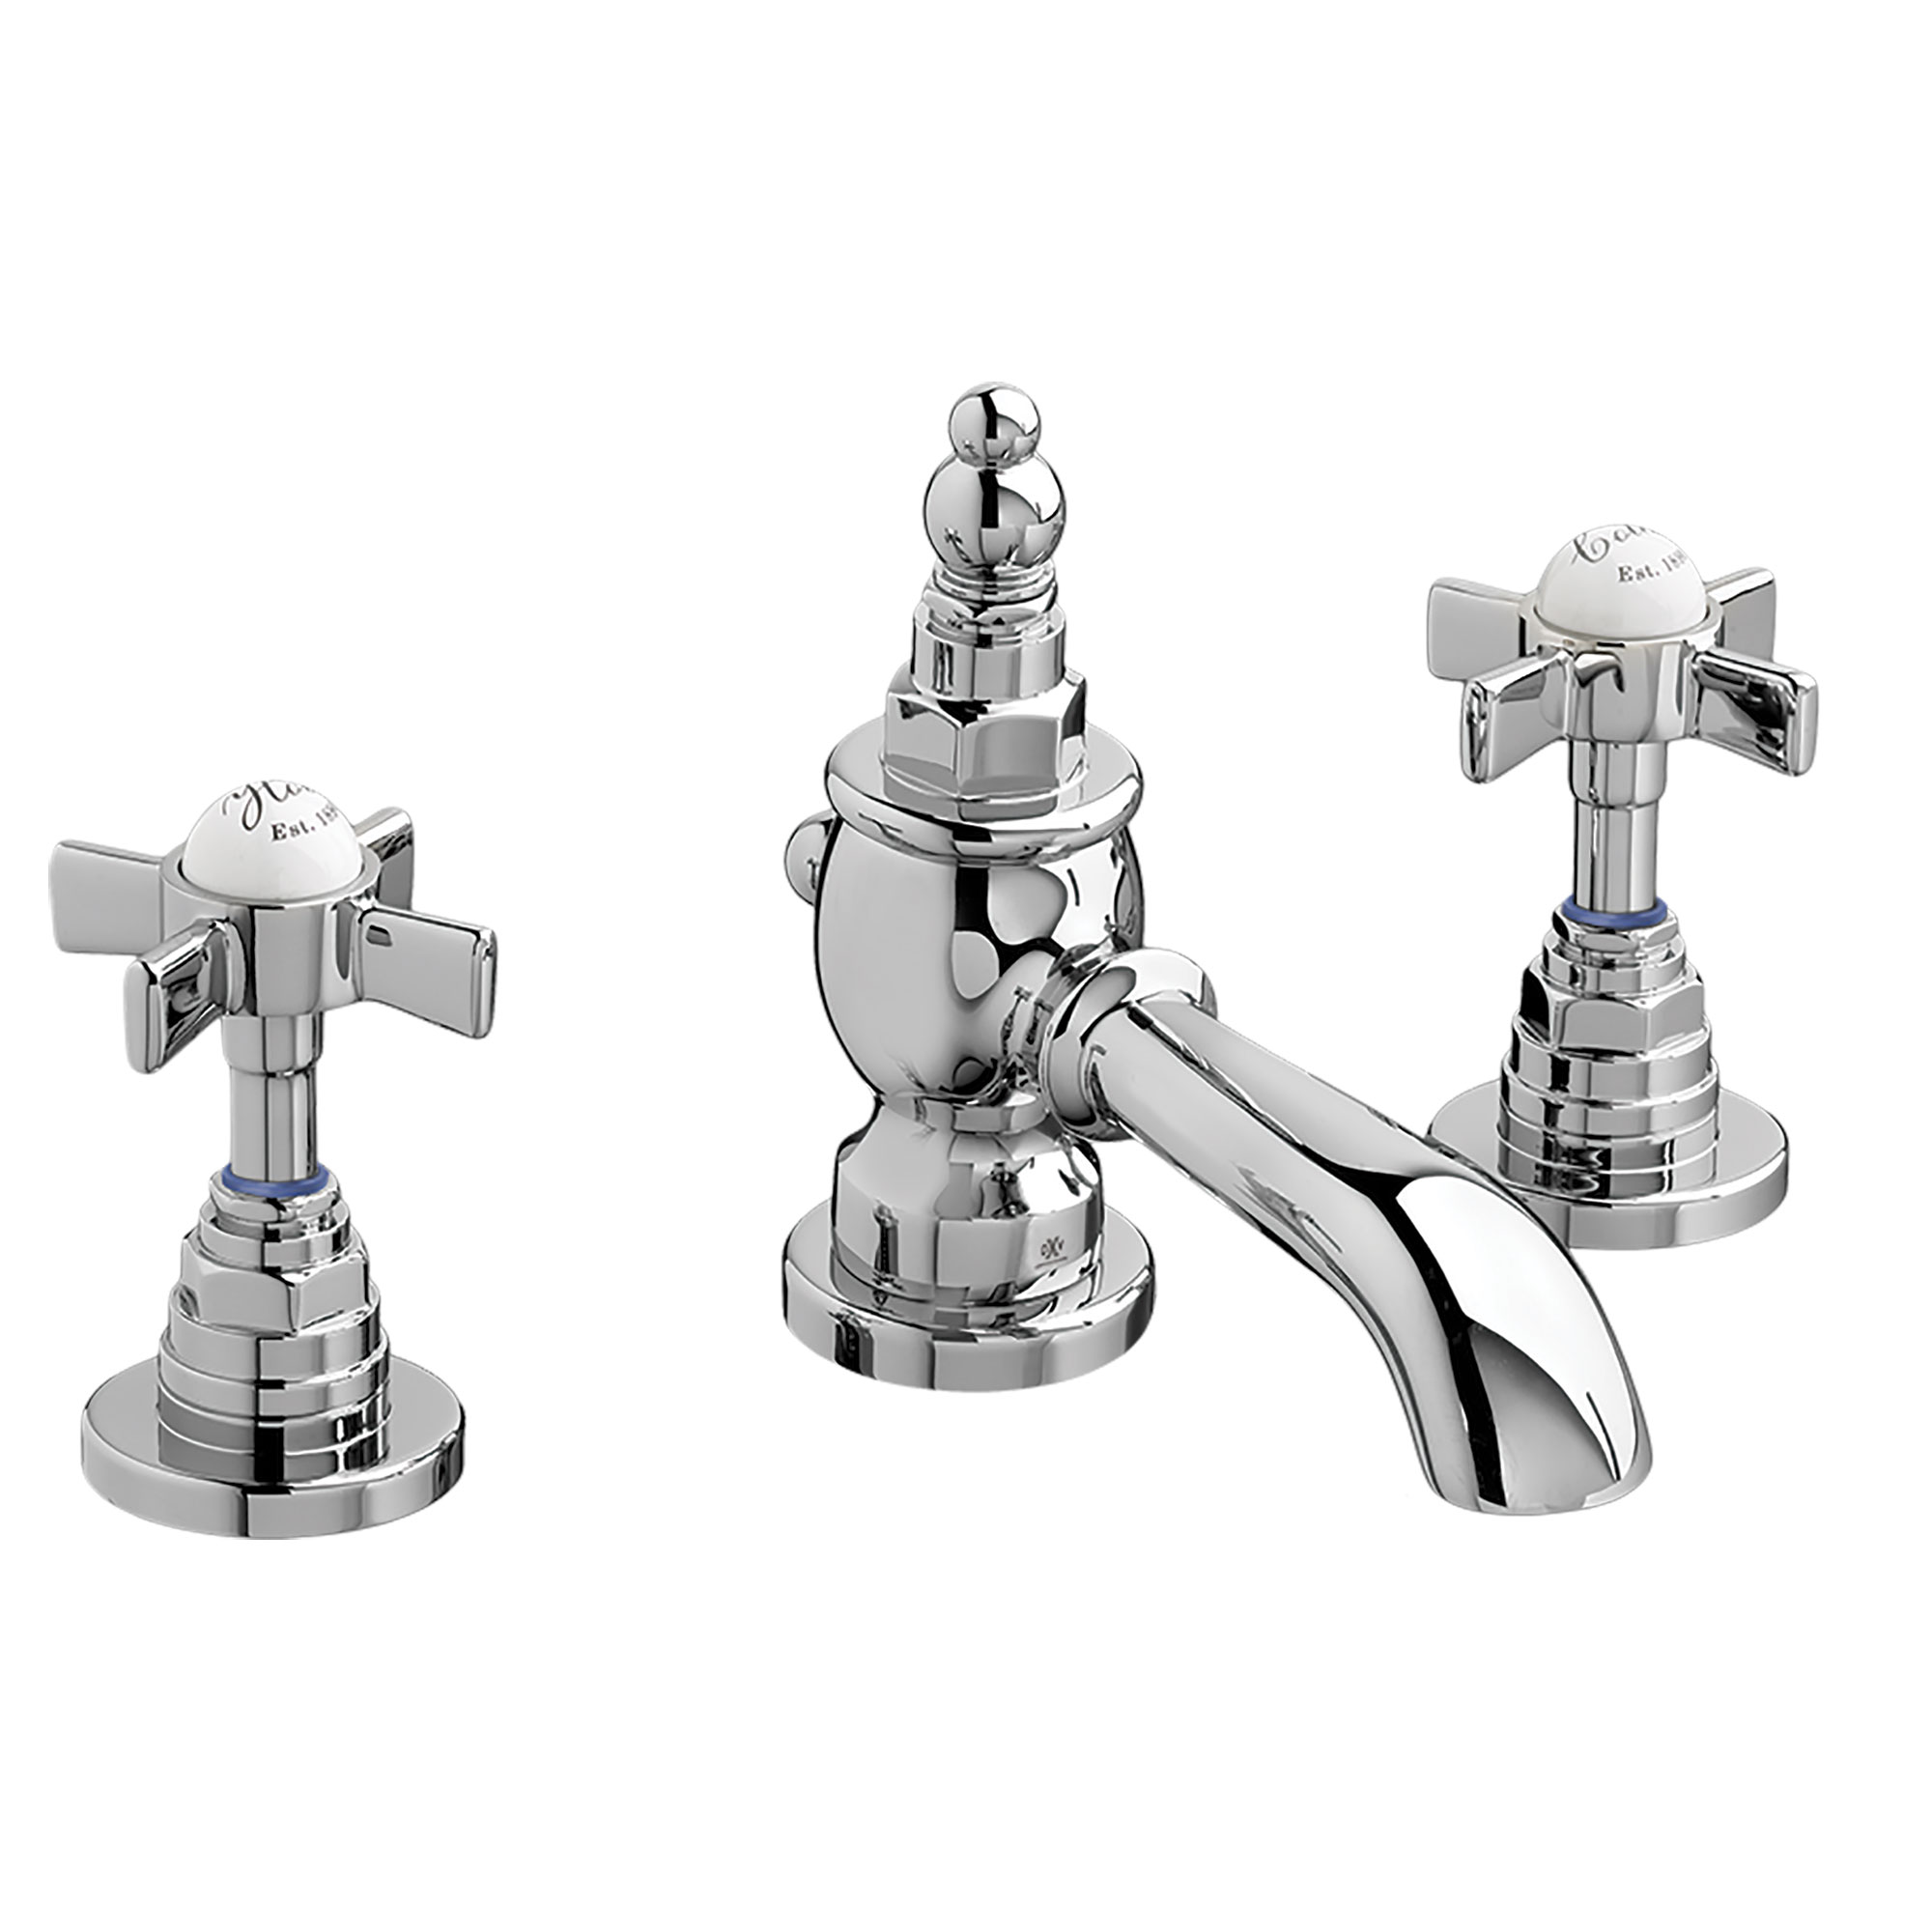 Landfair Widespread Bathroom Faucet - Projects Model